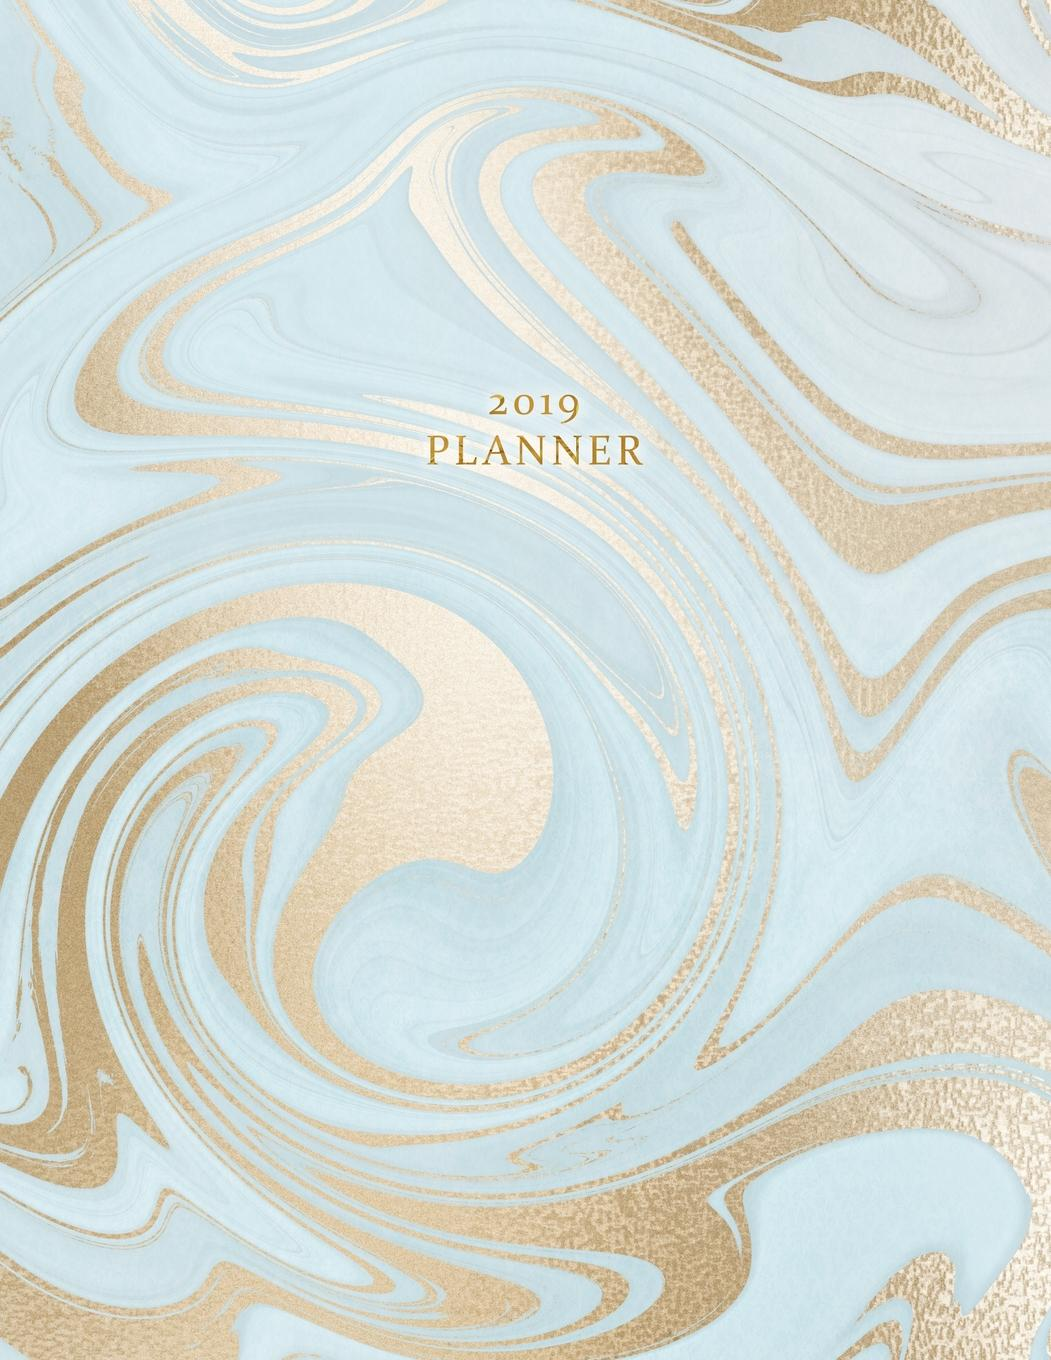 photo regarding Monthly Organizer titled 2019 Planner: Weekly and Regular monthly Planner Calendar Organizer Routine (January 2019 in the direction of December 2019) Sky Blue Gold Marble (Paperback)